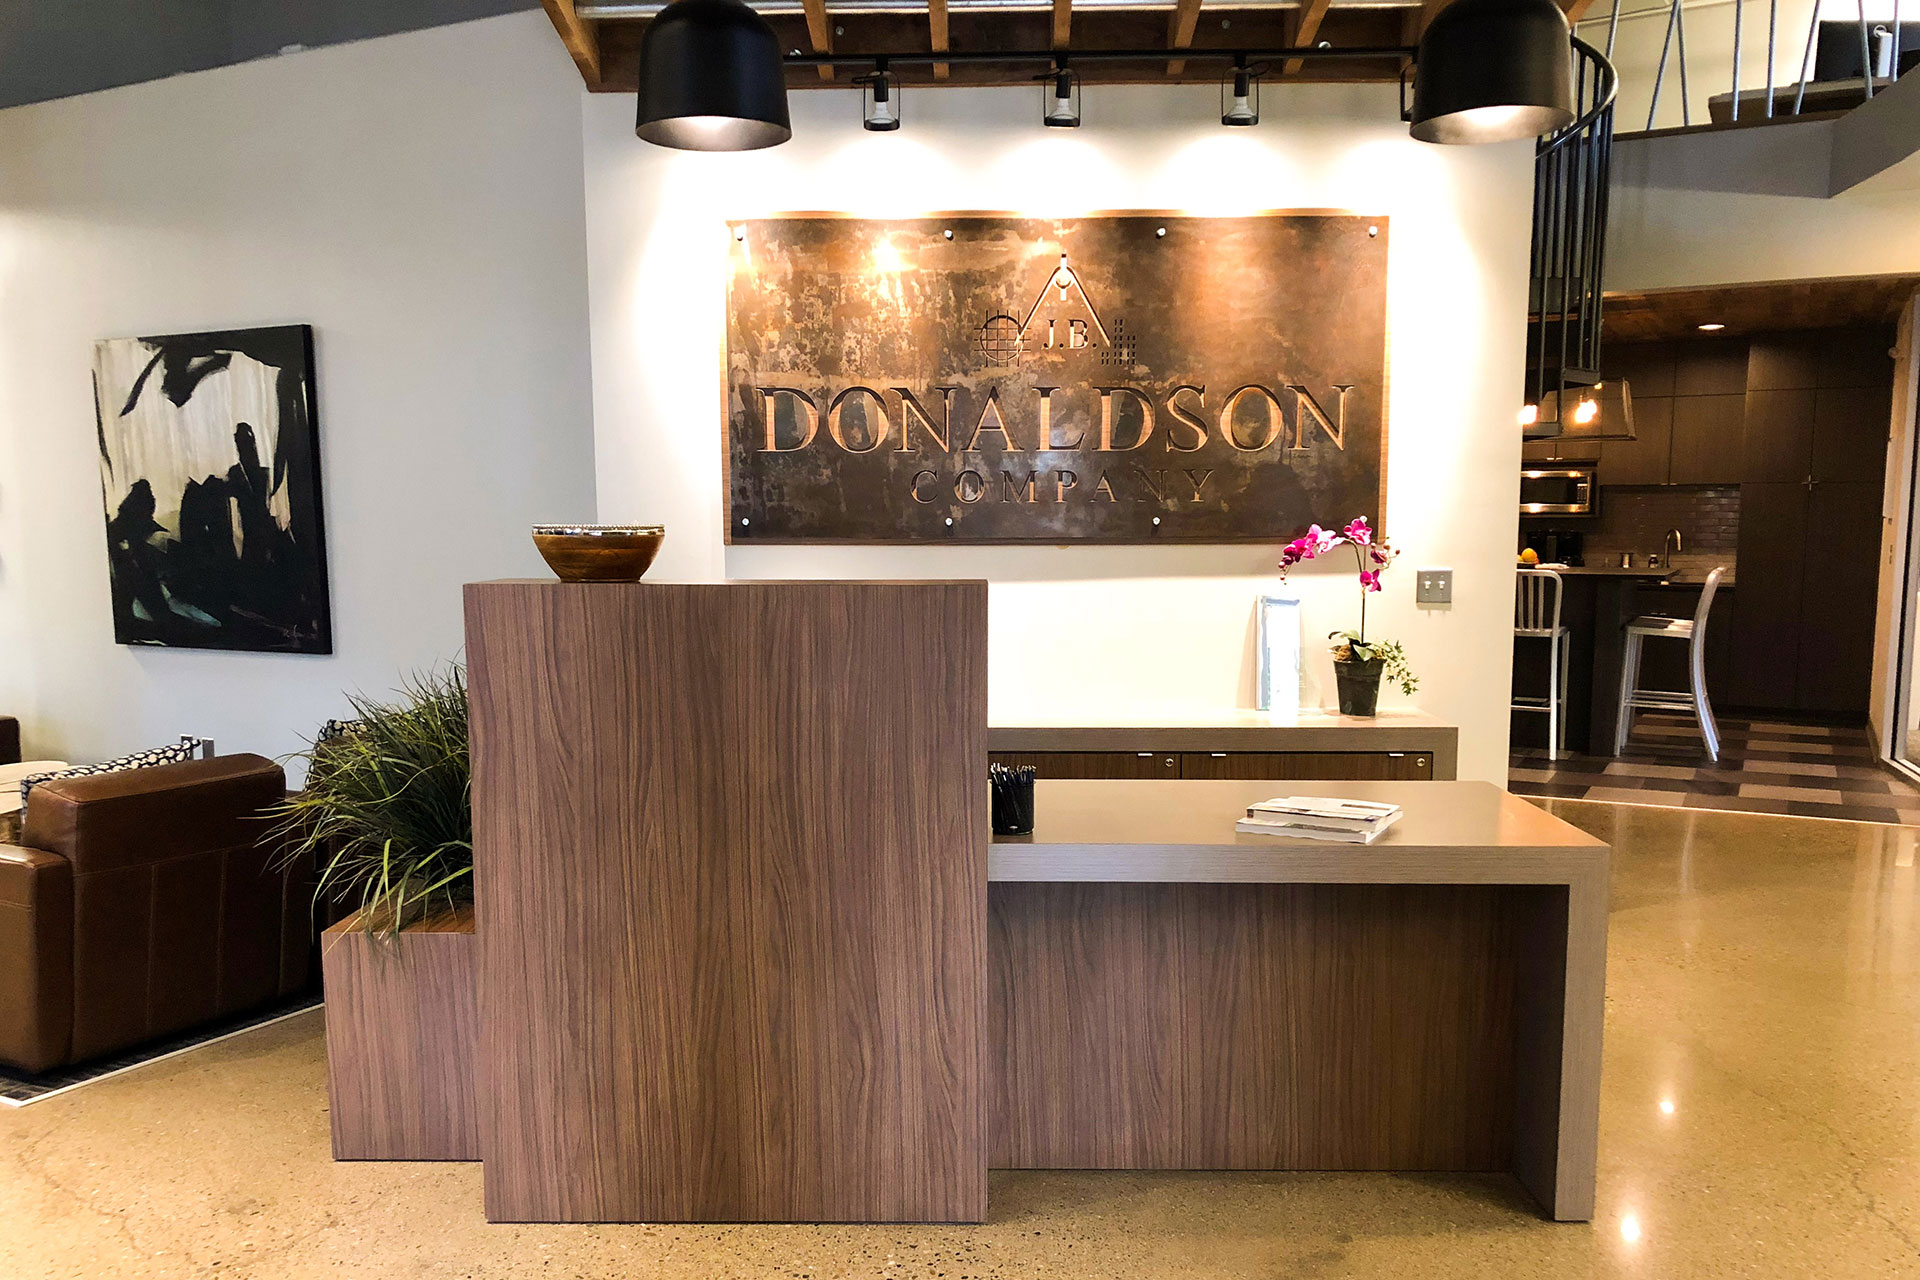 Custom reception desk with plastic laminate cabinets and countertops with matching plastic laminate planter box, and suspended rough-sawn walnut trellis above, and plastic laminate/steel sign.